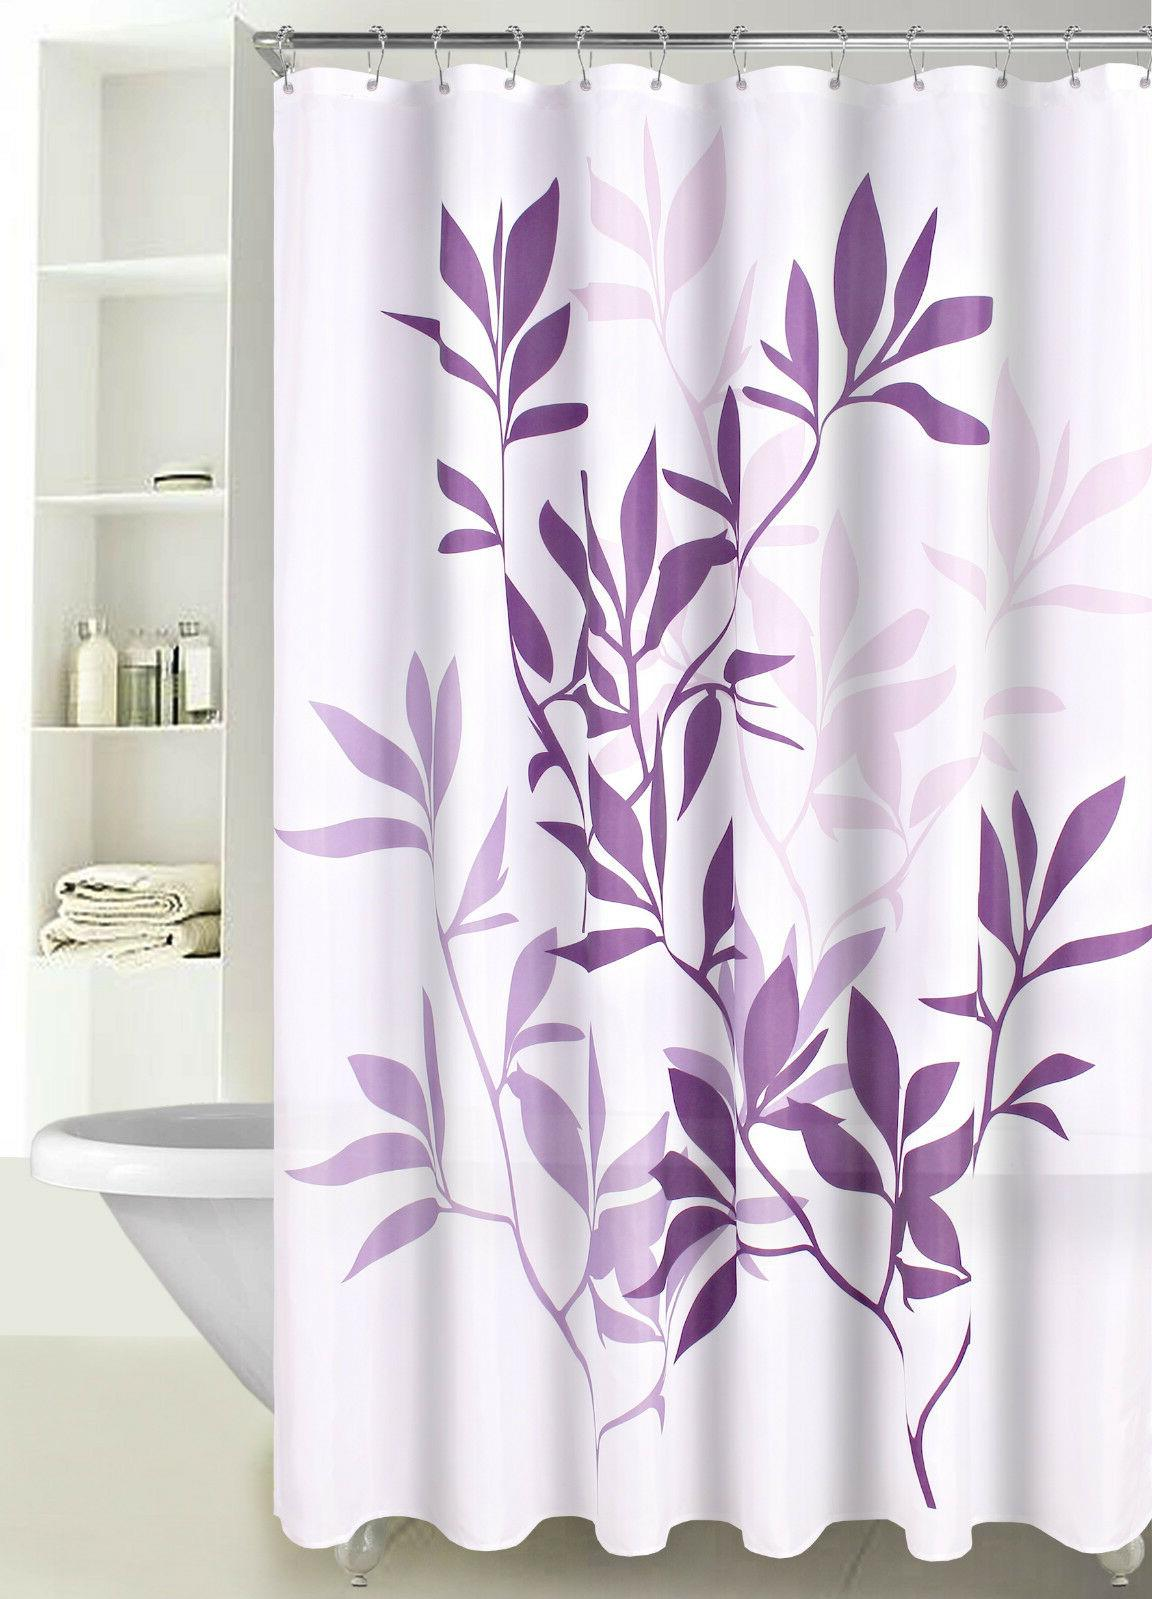 Fabric Shower Curtain Multicolor Forest Leaves with Reinforc